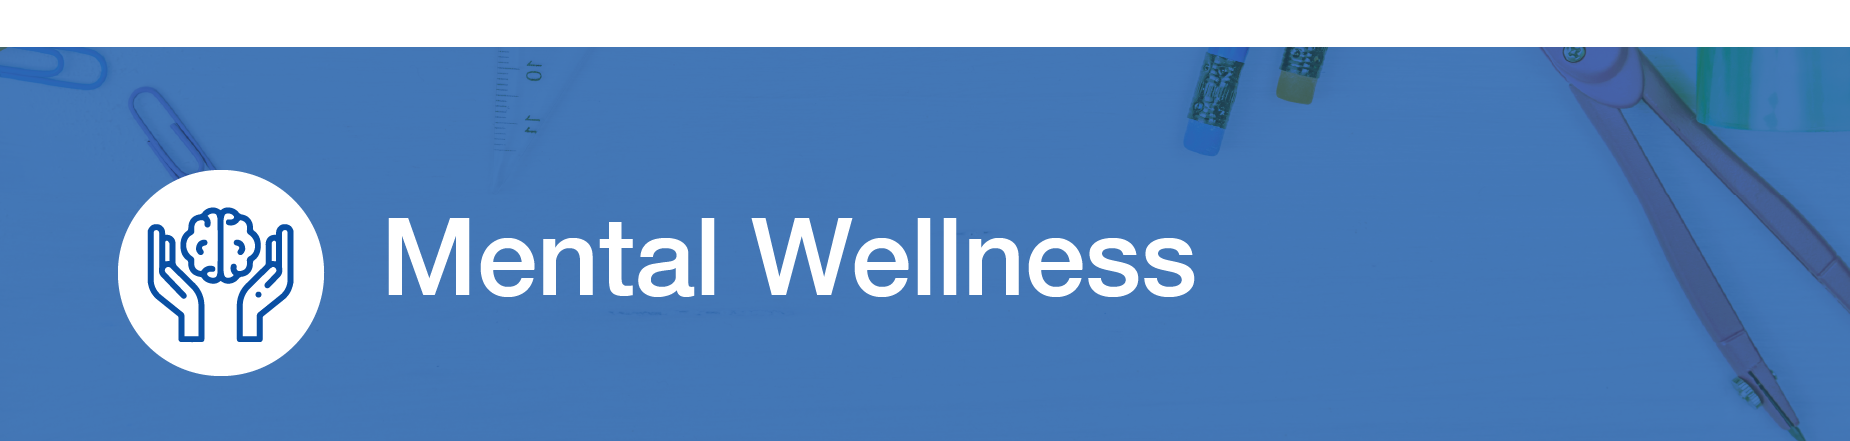 Mental Wellness Banner